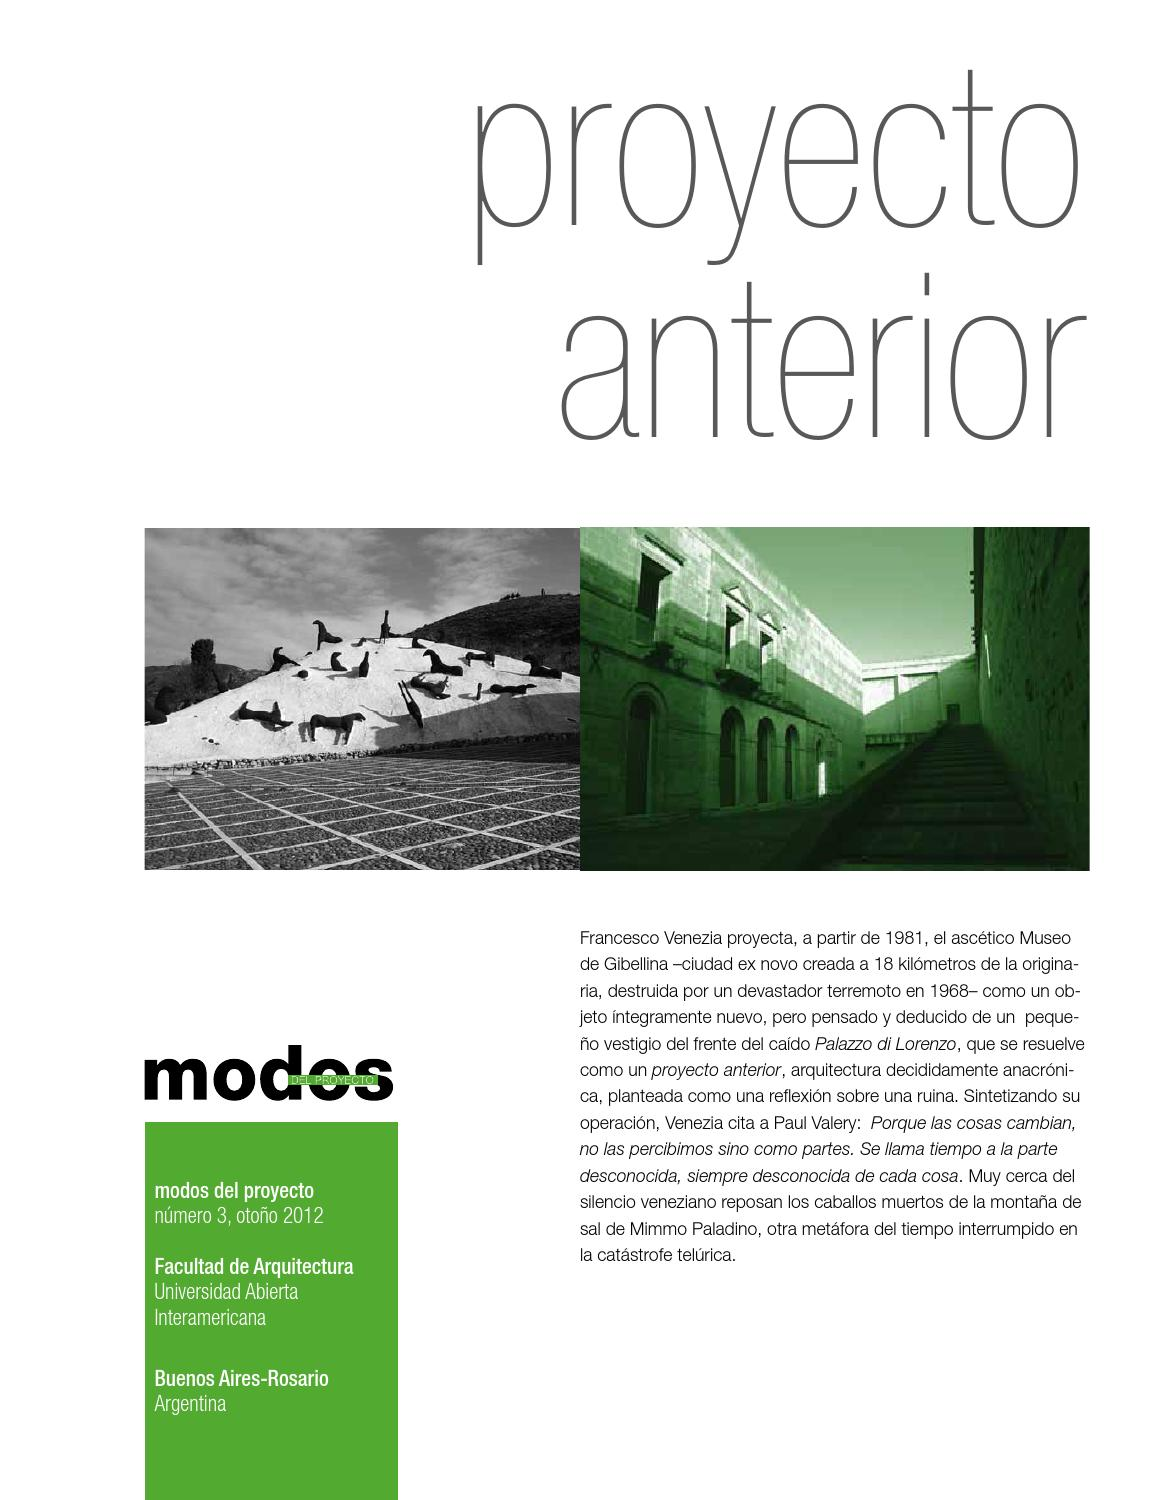 Revista modos nº 3 - proyecto anterior by CAEAU - issuu